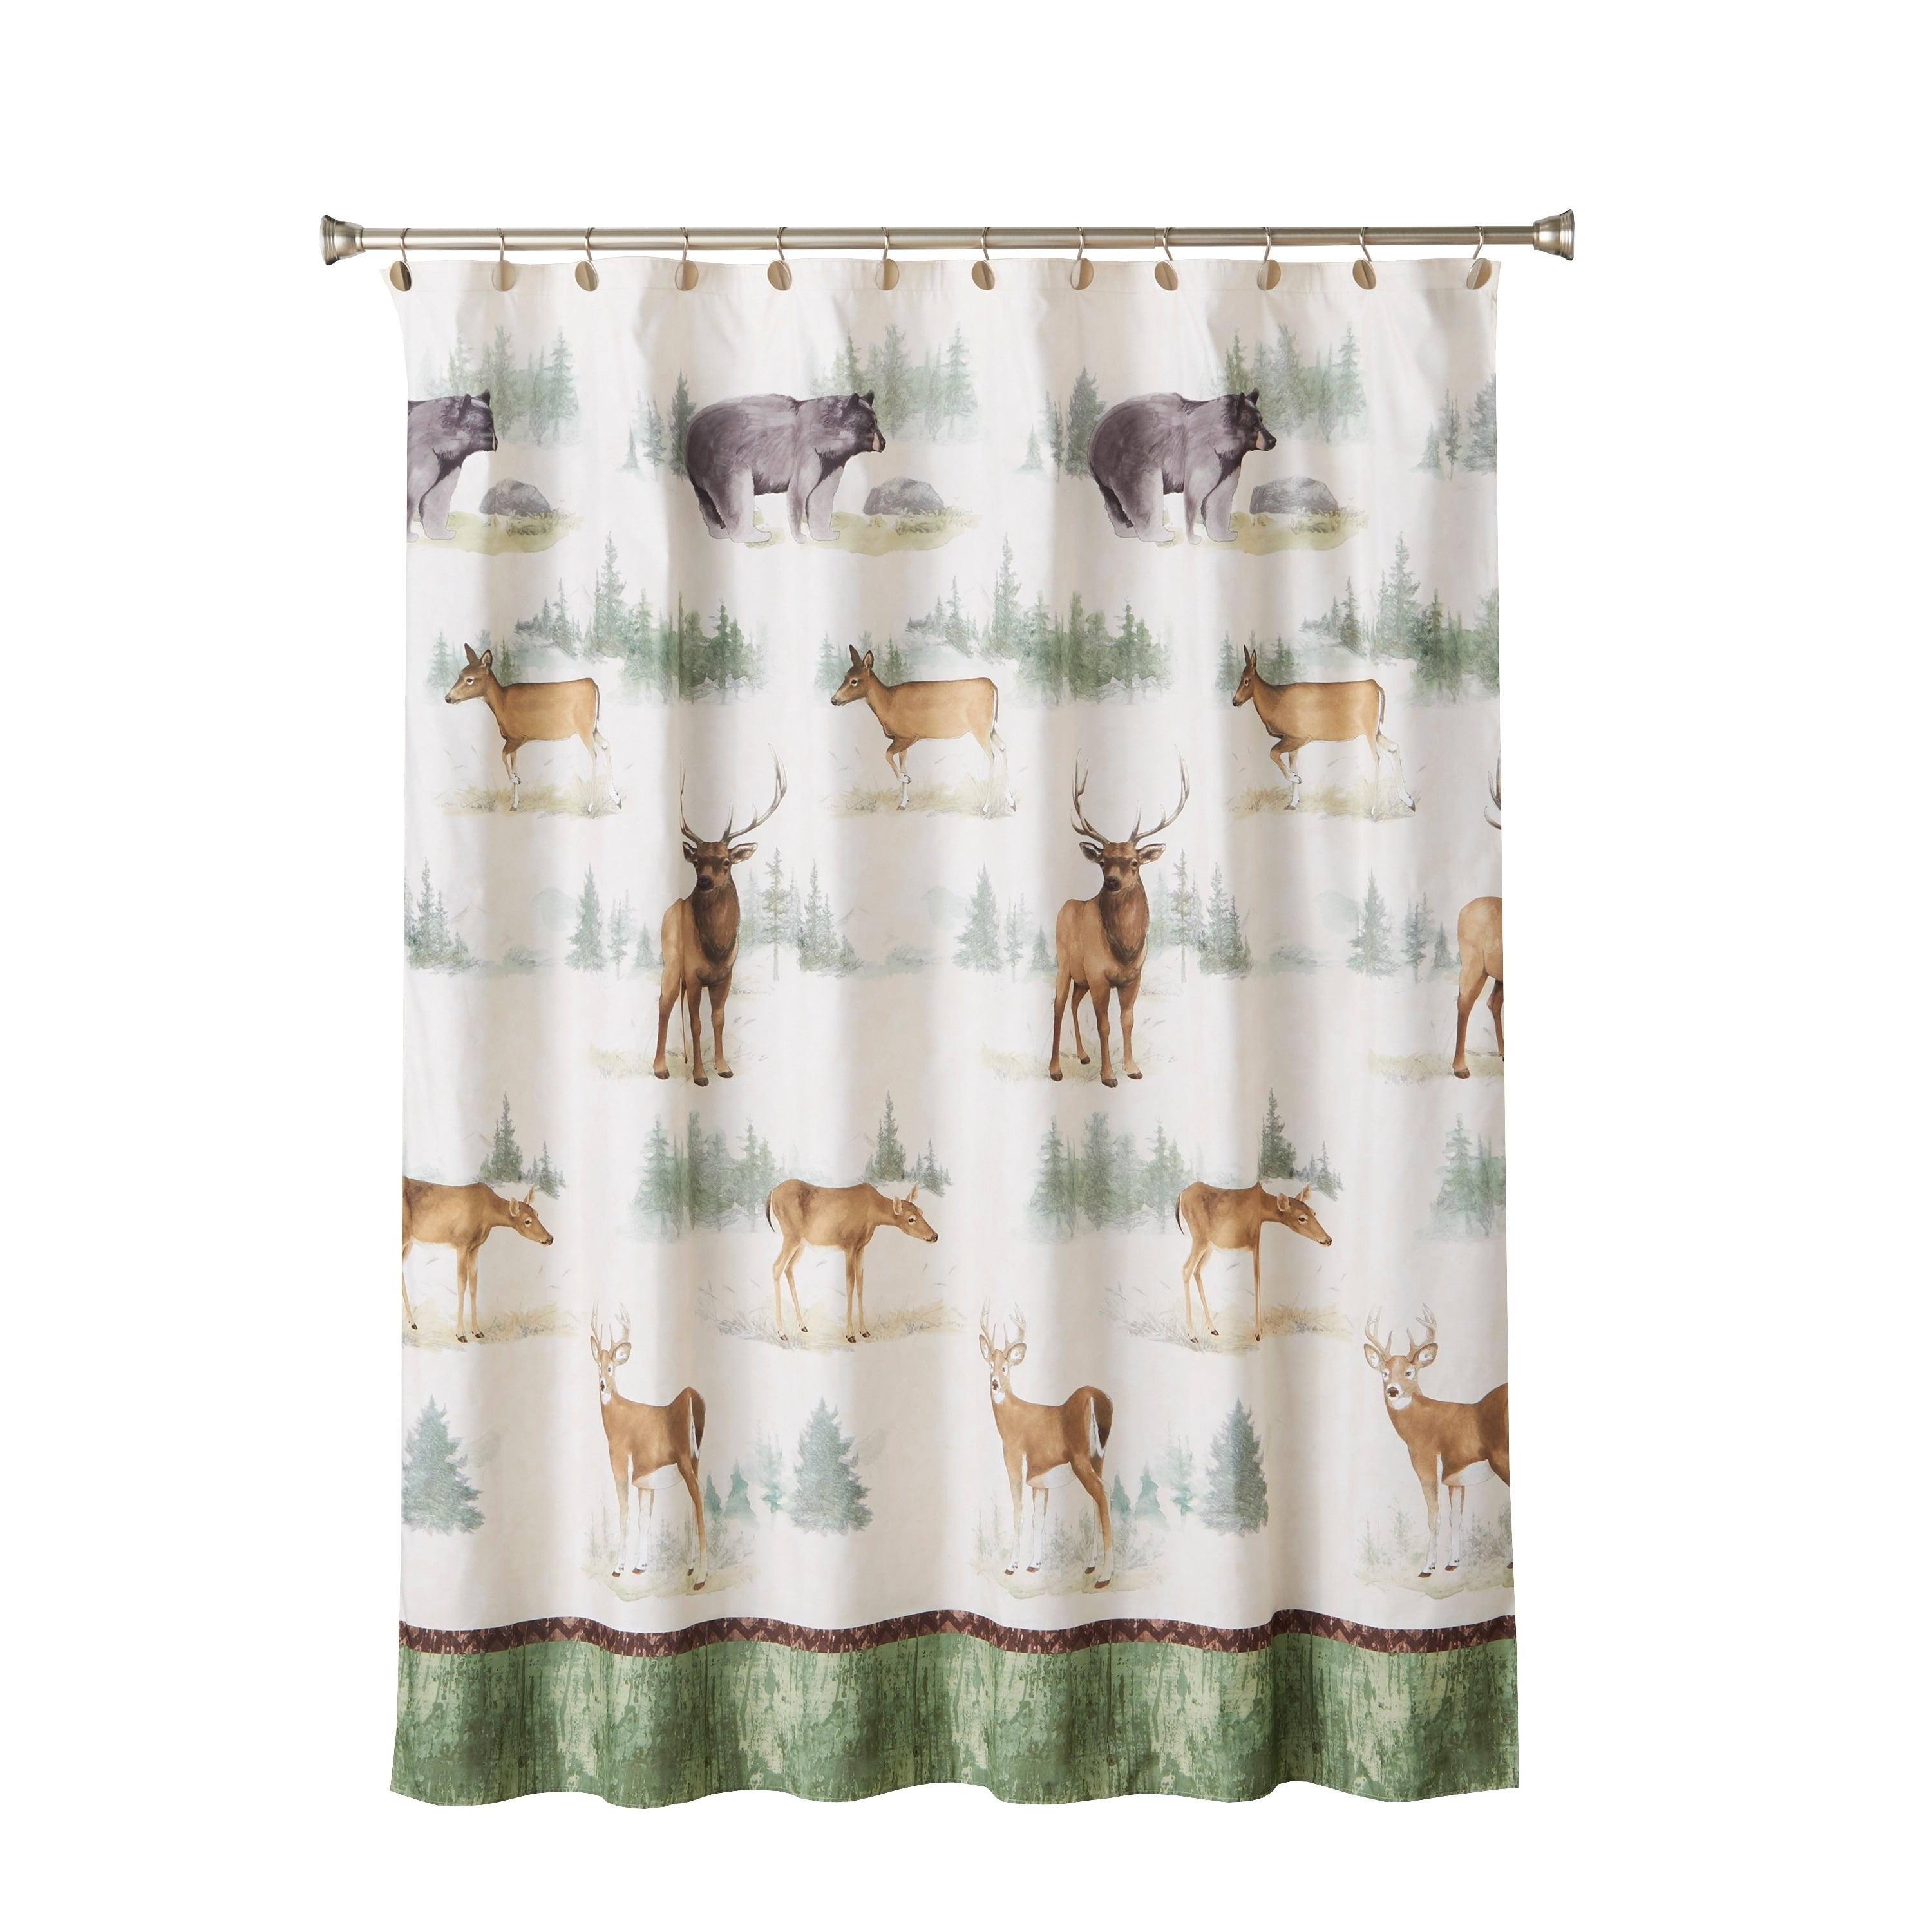 Home Home On The Range Shower Curtain Brown Novelty Cabin Lodge Polyester - Diamond Home USA